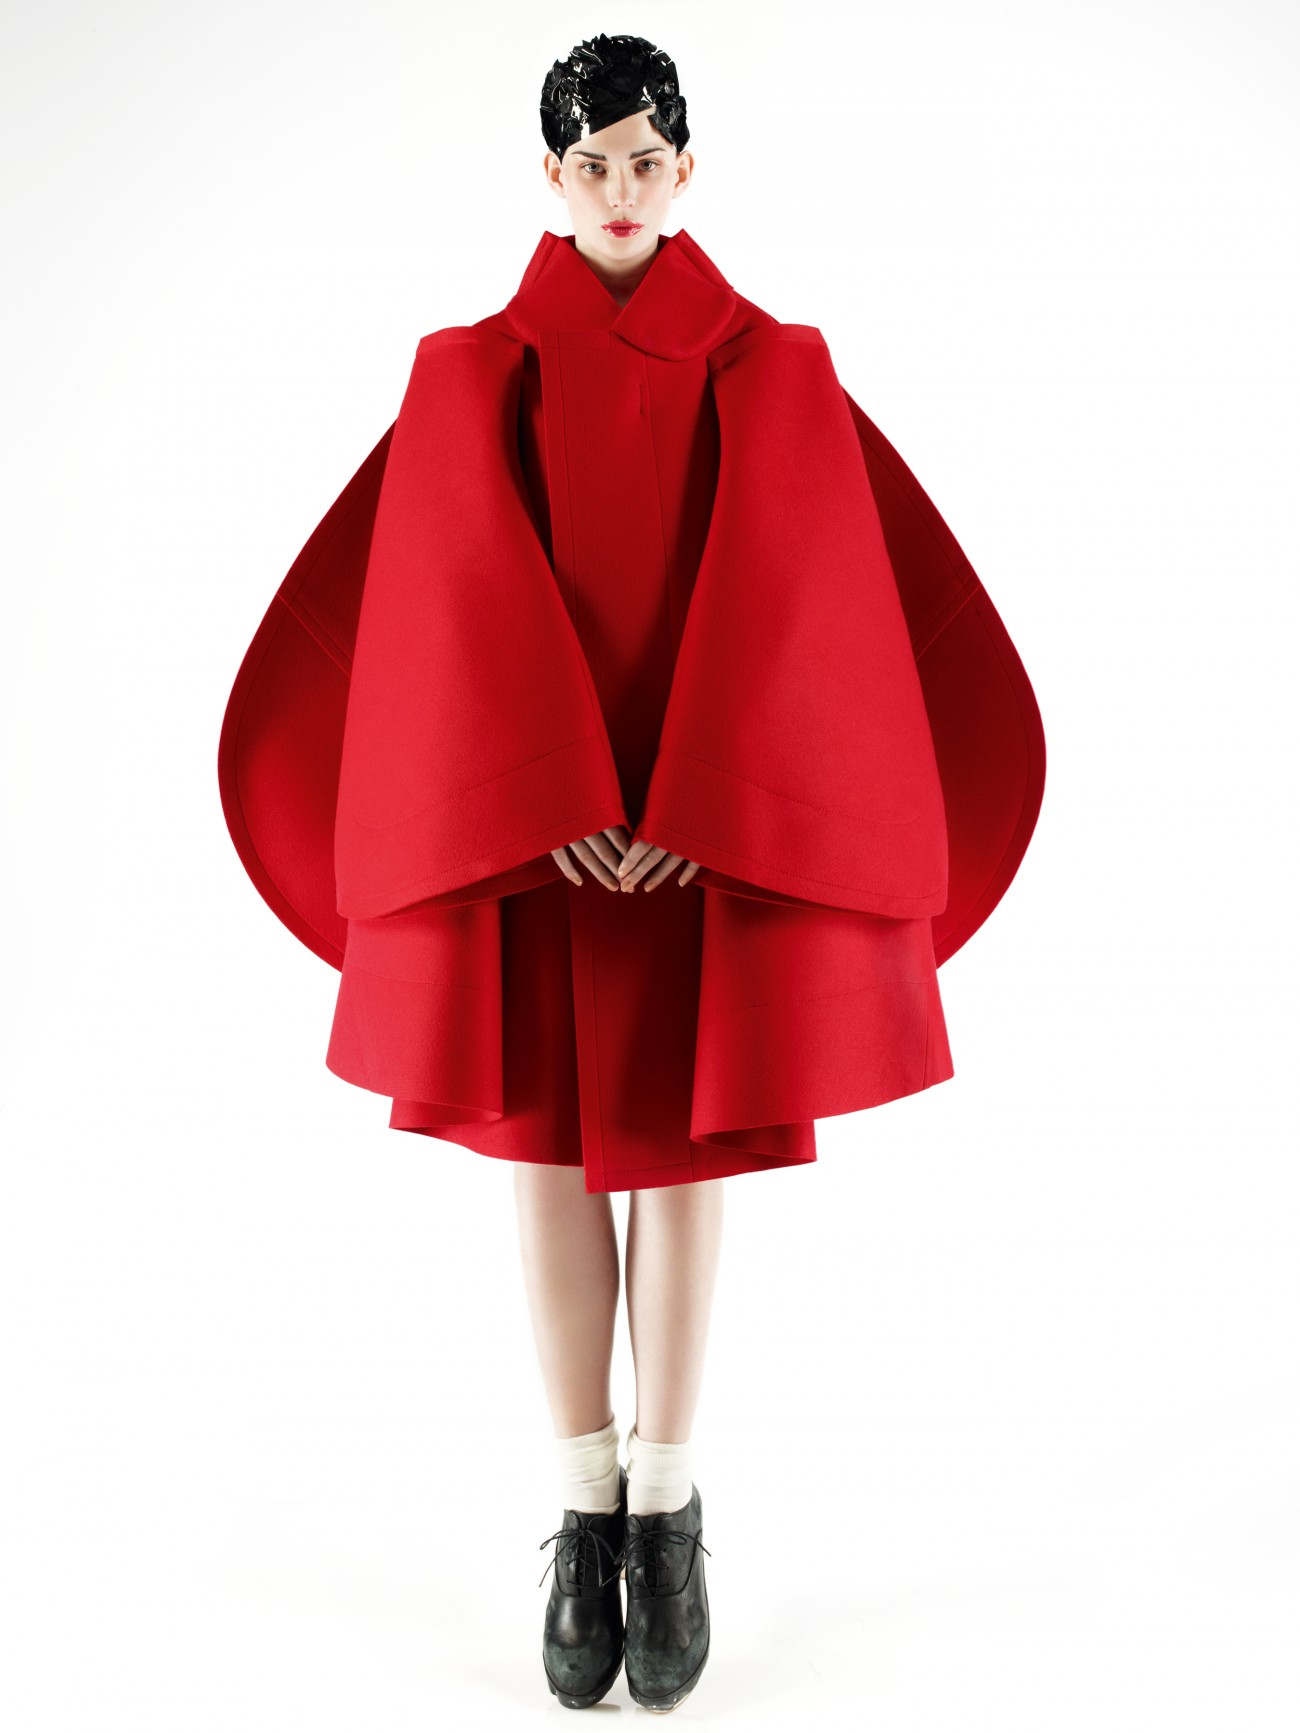 Comme des Garçons, herfst-winter 2012-13, foto Mark Segal, model Monika Sawicka.